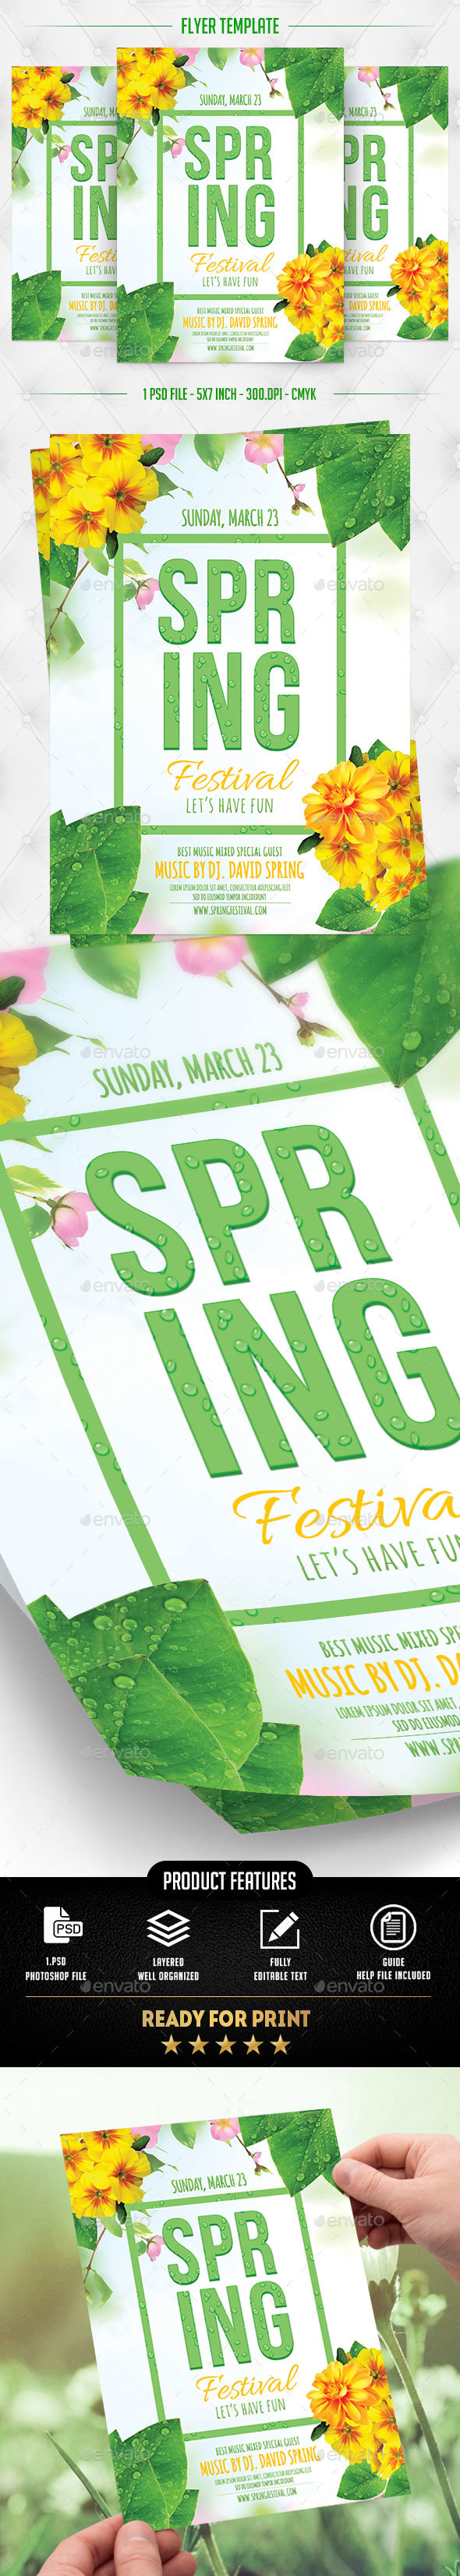 Spring Festival Flyer Template - Flyers Print Templates